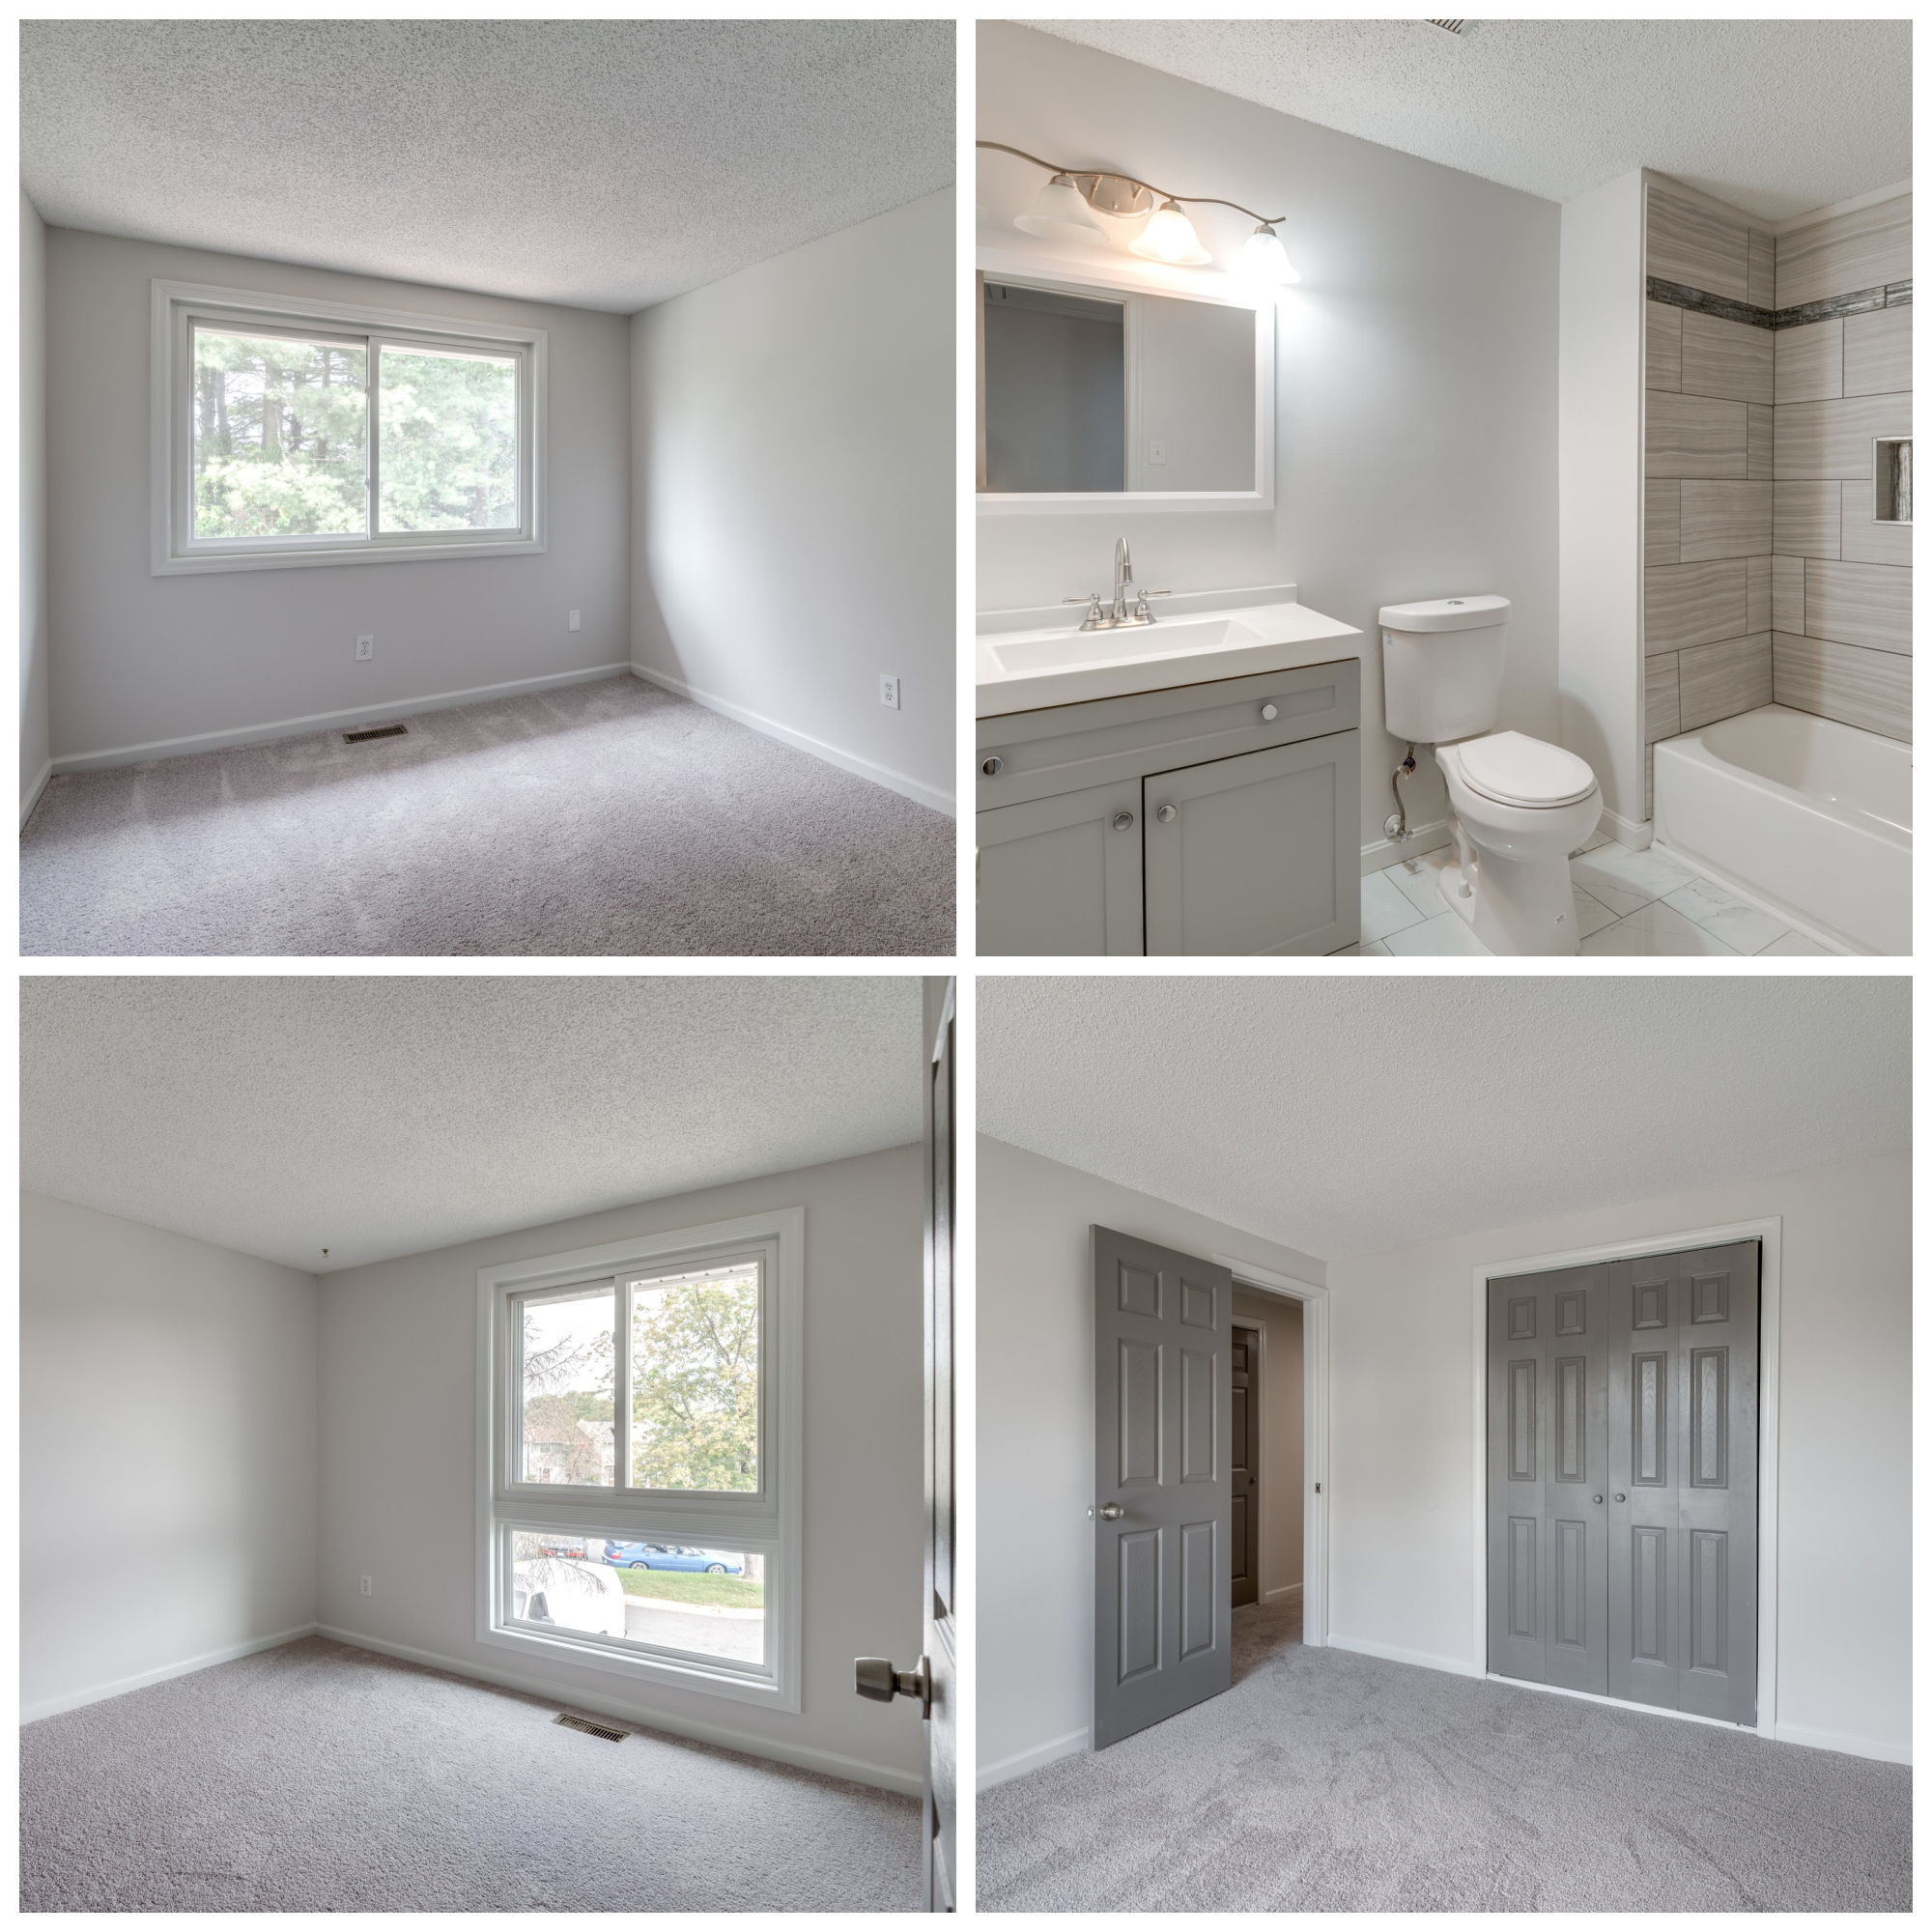 102 Drury Cir, Sterling- Additional Bedrooms and Bathroom